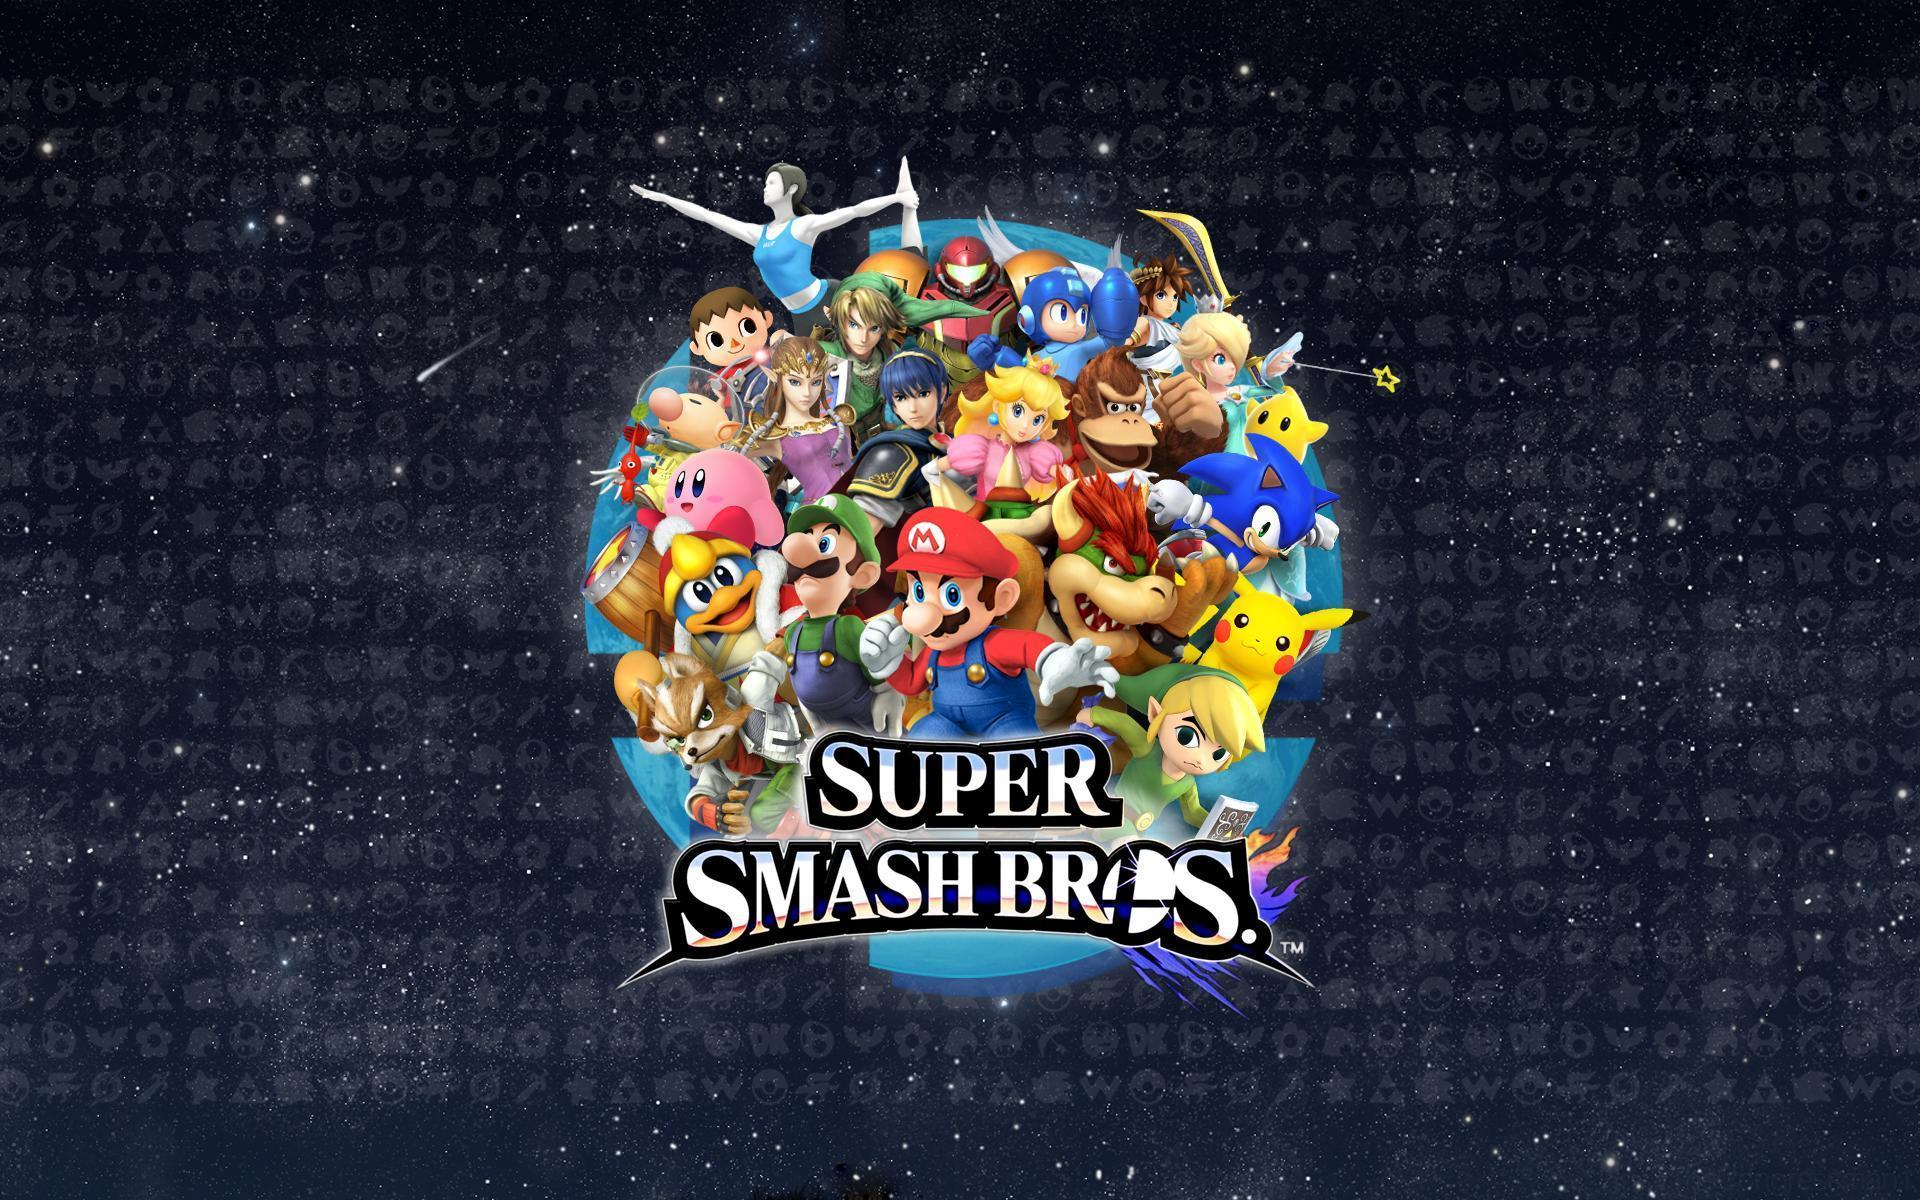 My Smash Bros. Wallpapers that I am also updating with each